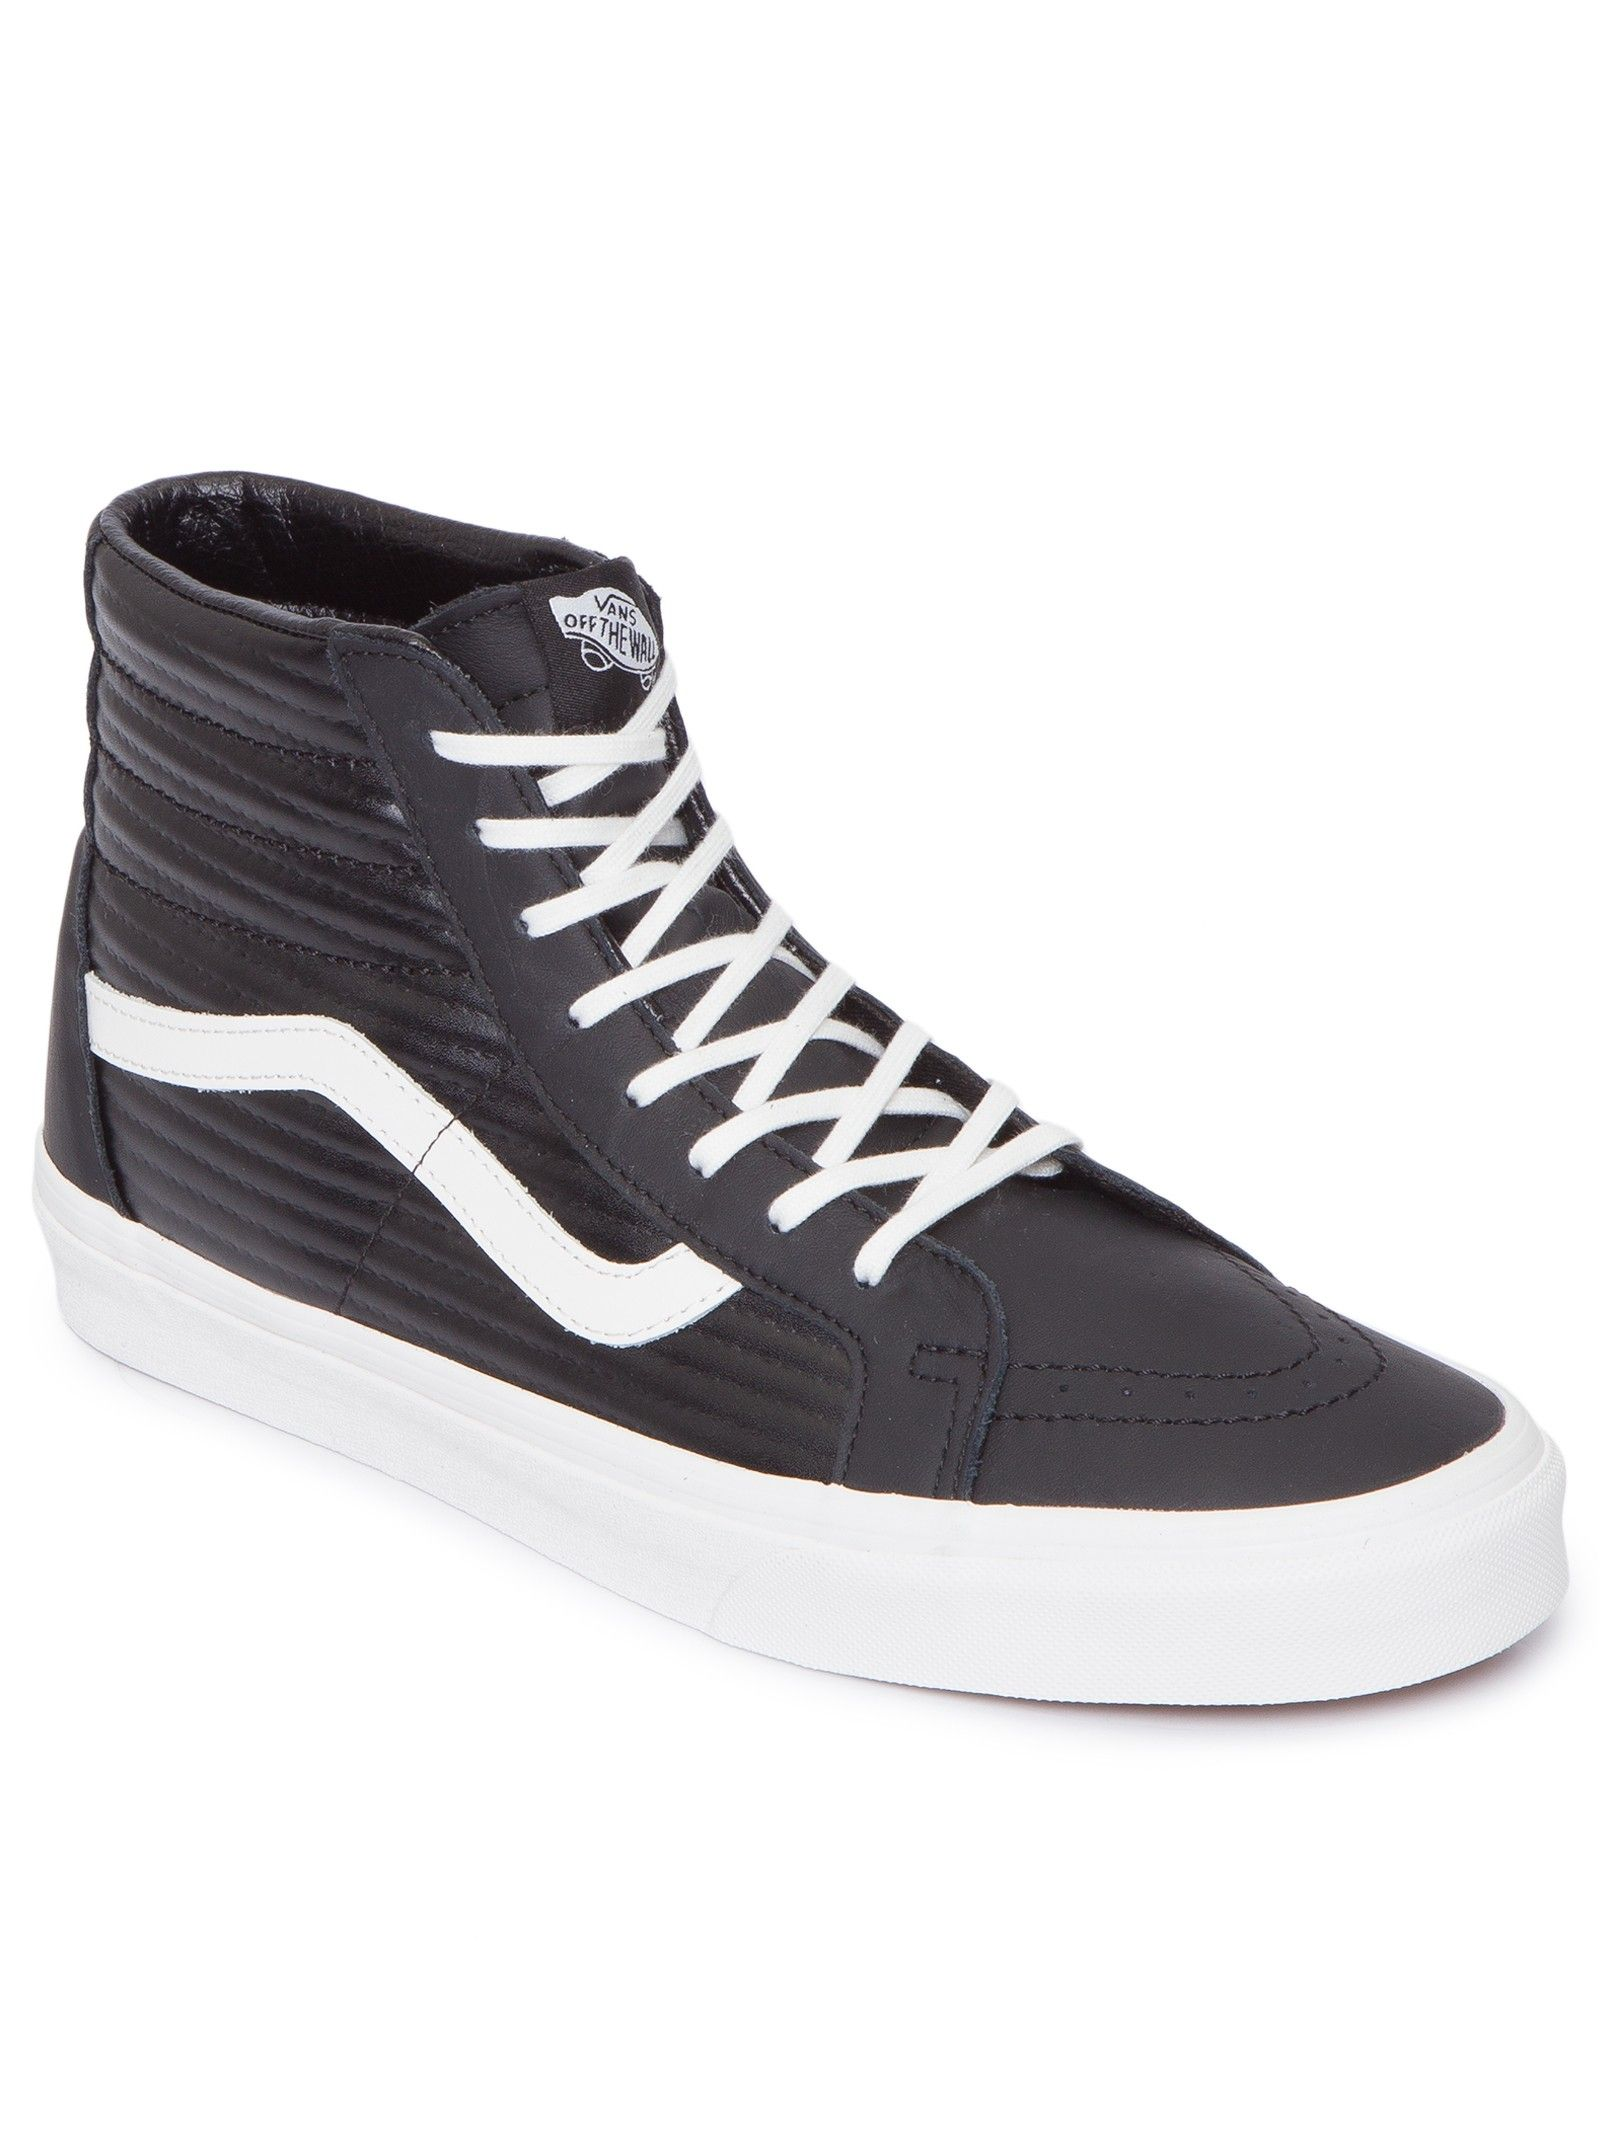 005b29ec837b Tênis Ua Sk8-Hi Reissue Moto Leather - Vans - Preto - Shop2gether ...